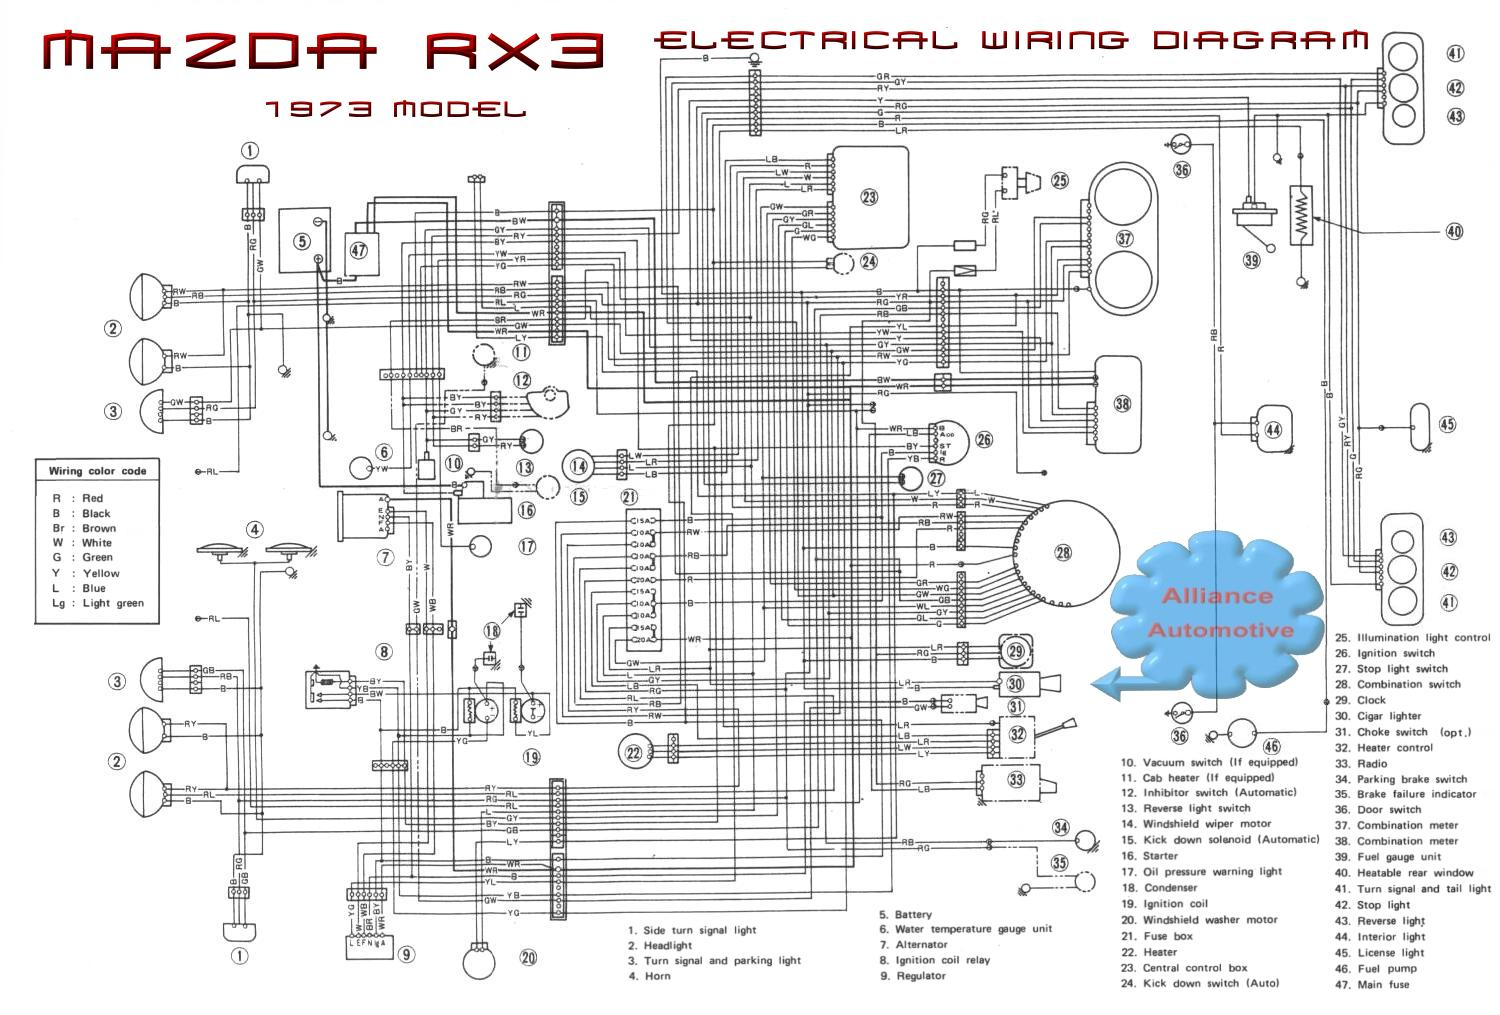 Mazda 3 Horn Wiring Diagram 27 Images Train Air Horns Diagrams Rx3w4 How Do I Fix My Electrical Problems 2013 20